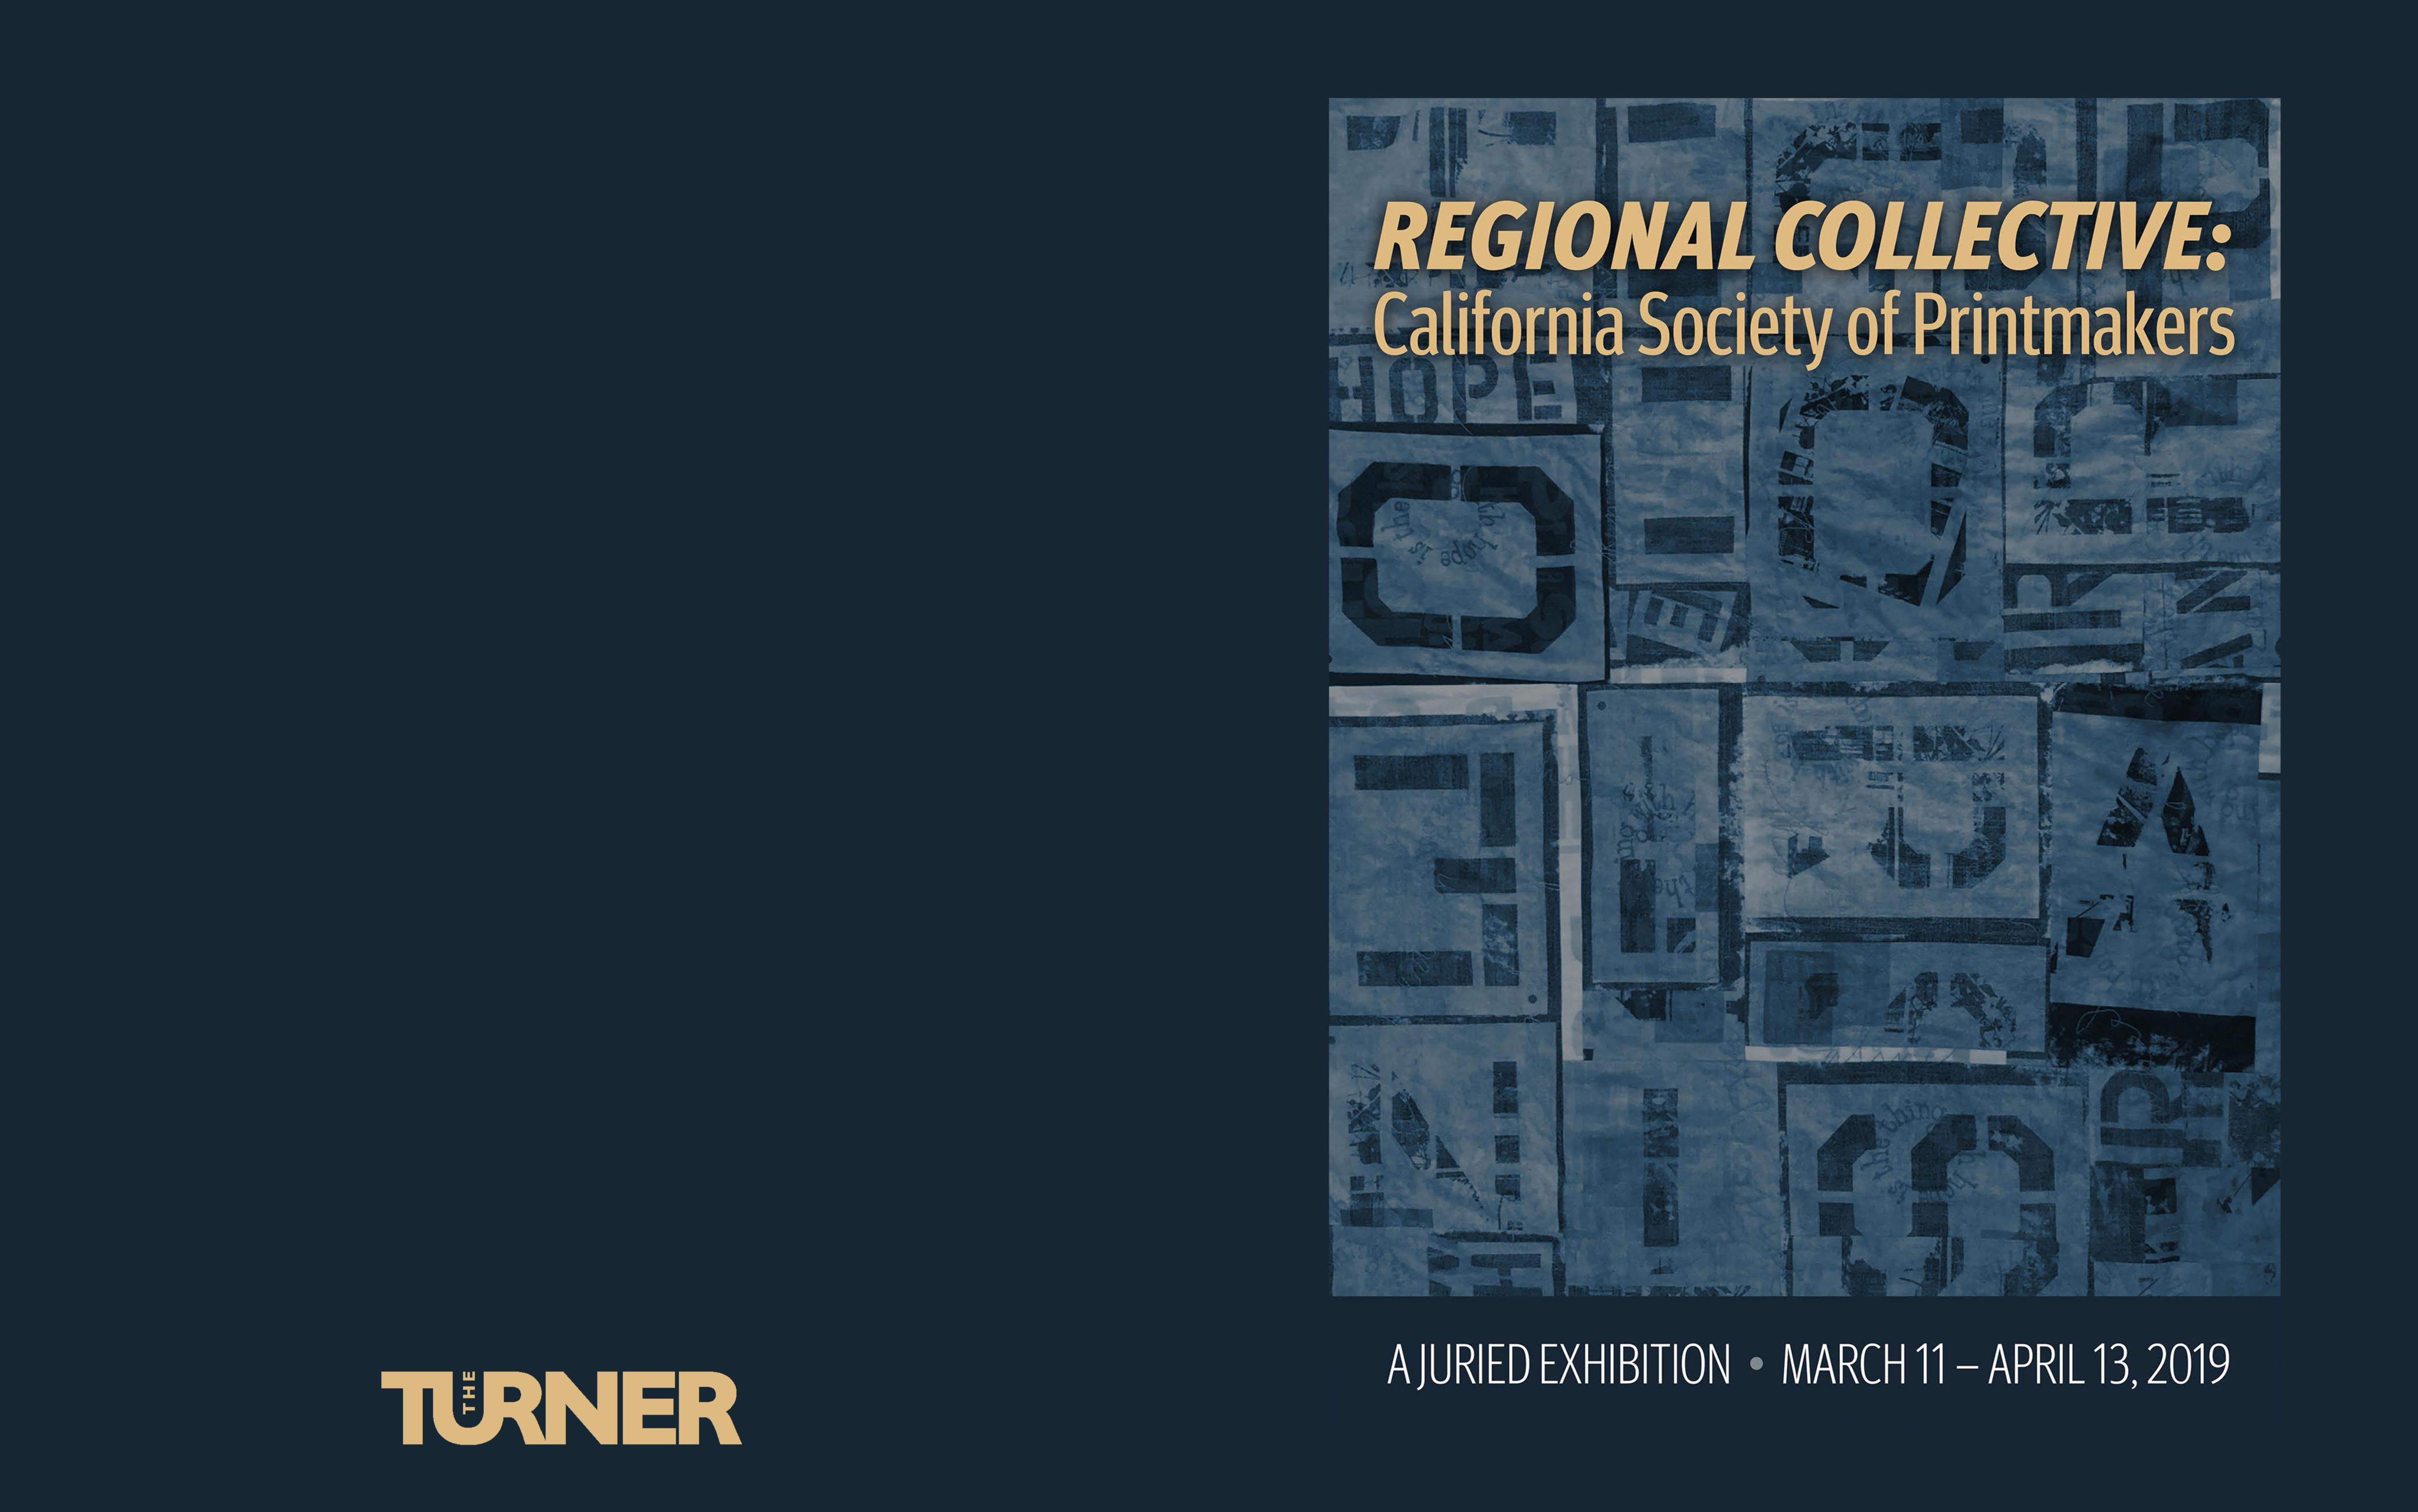 Regional Collective: California Society of Printmakers cover image